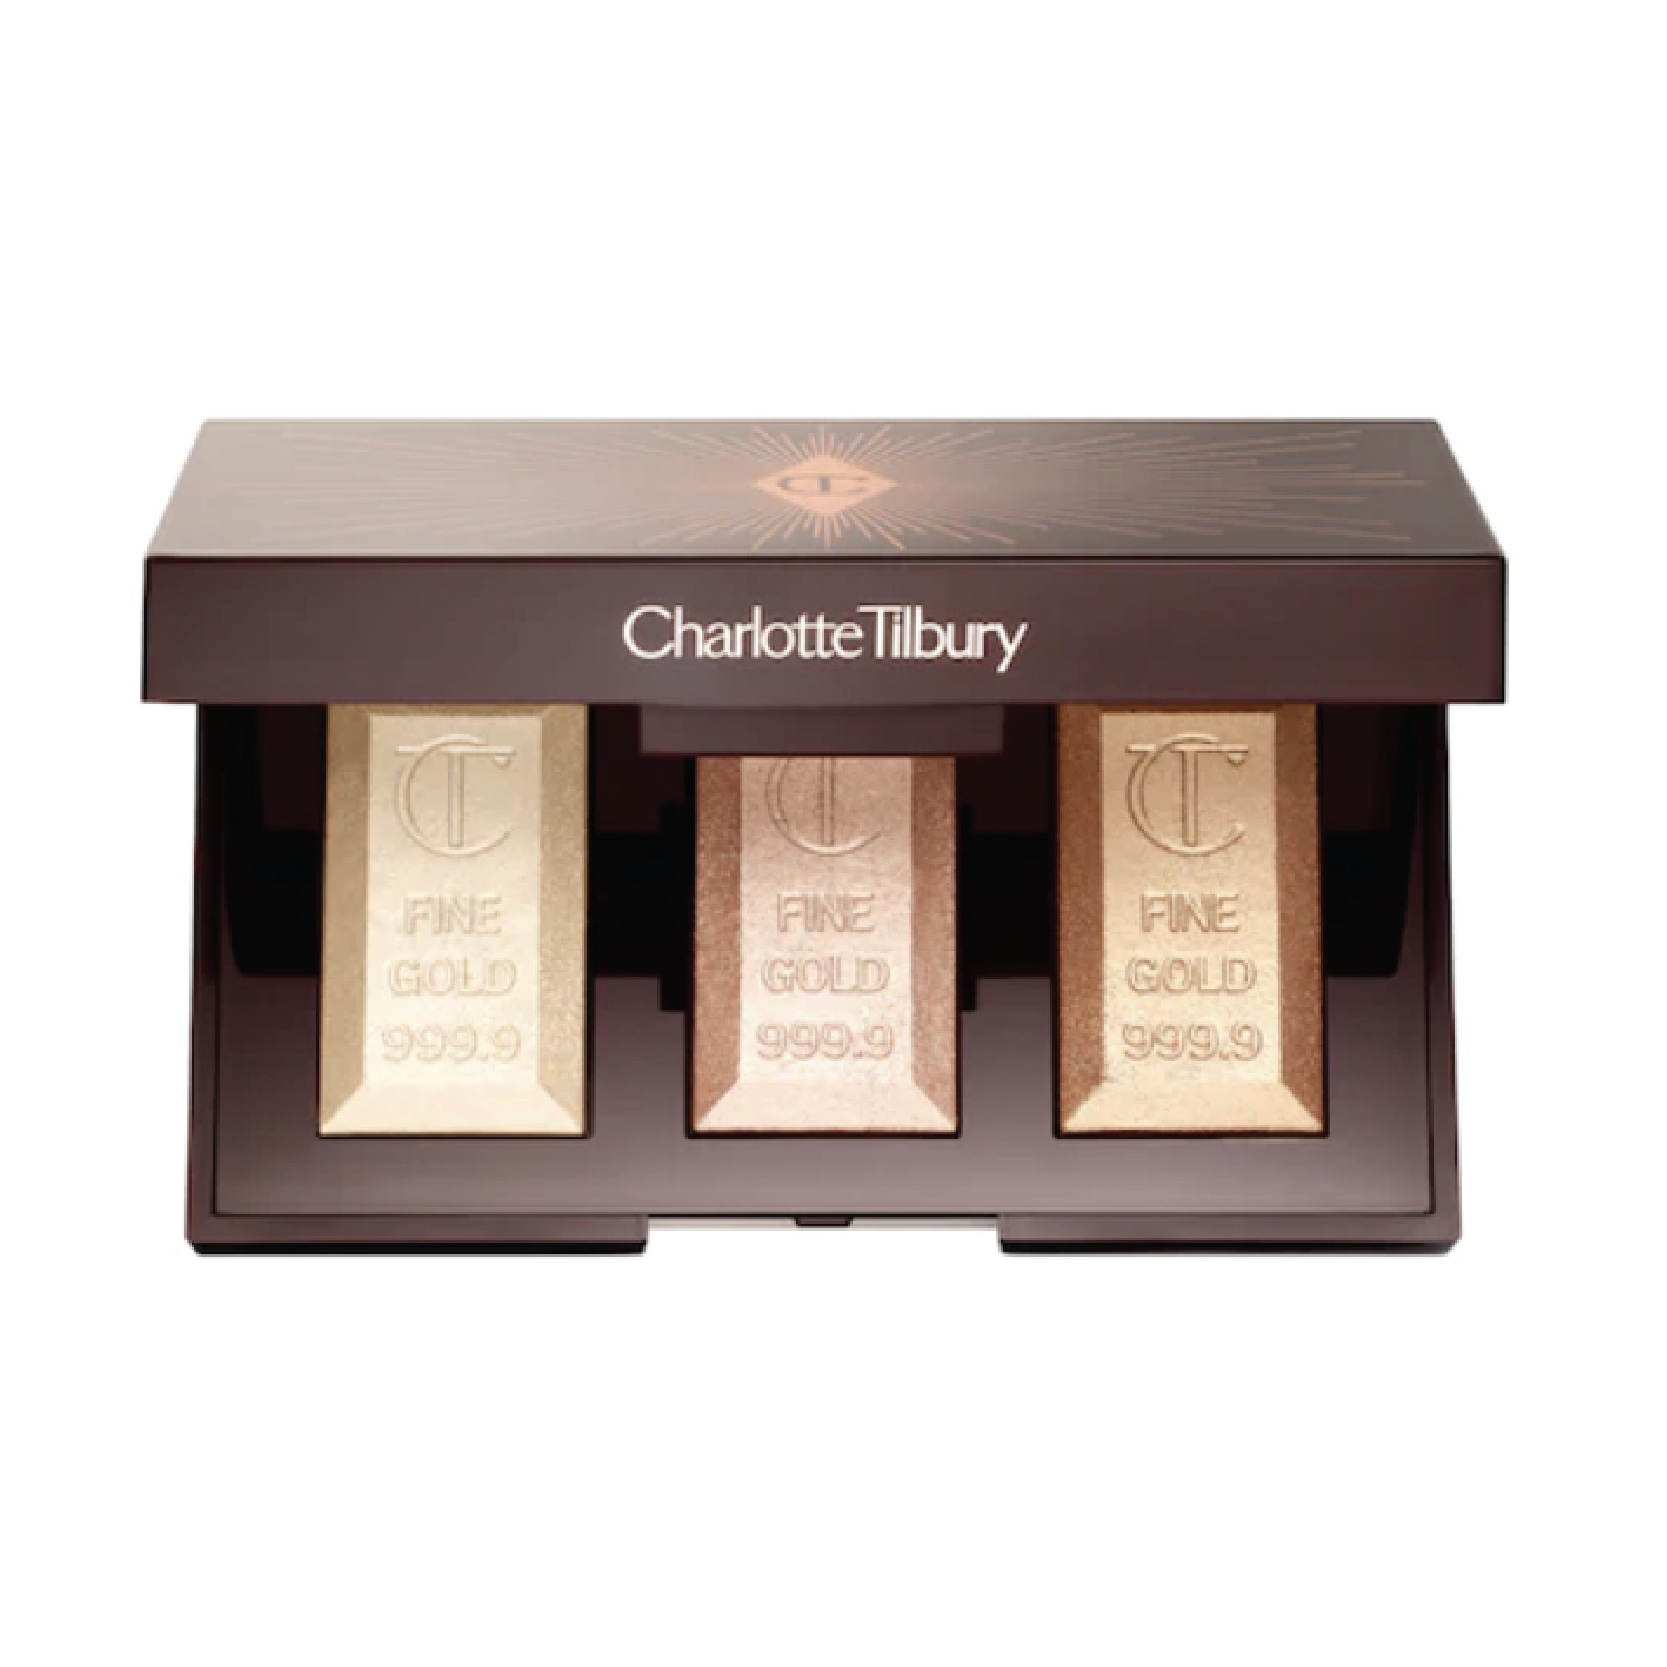 Charlotte Tilbury Bar of Gold Highlighting Palette - $58 at SephoraCharlotte Tilbury is known for her incredible natural glow. Her products blend so well they'll make you wonder if it's actually your skin.